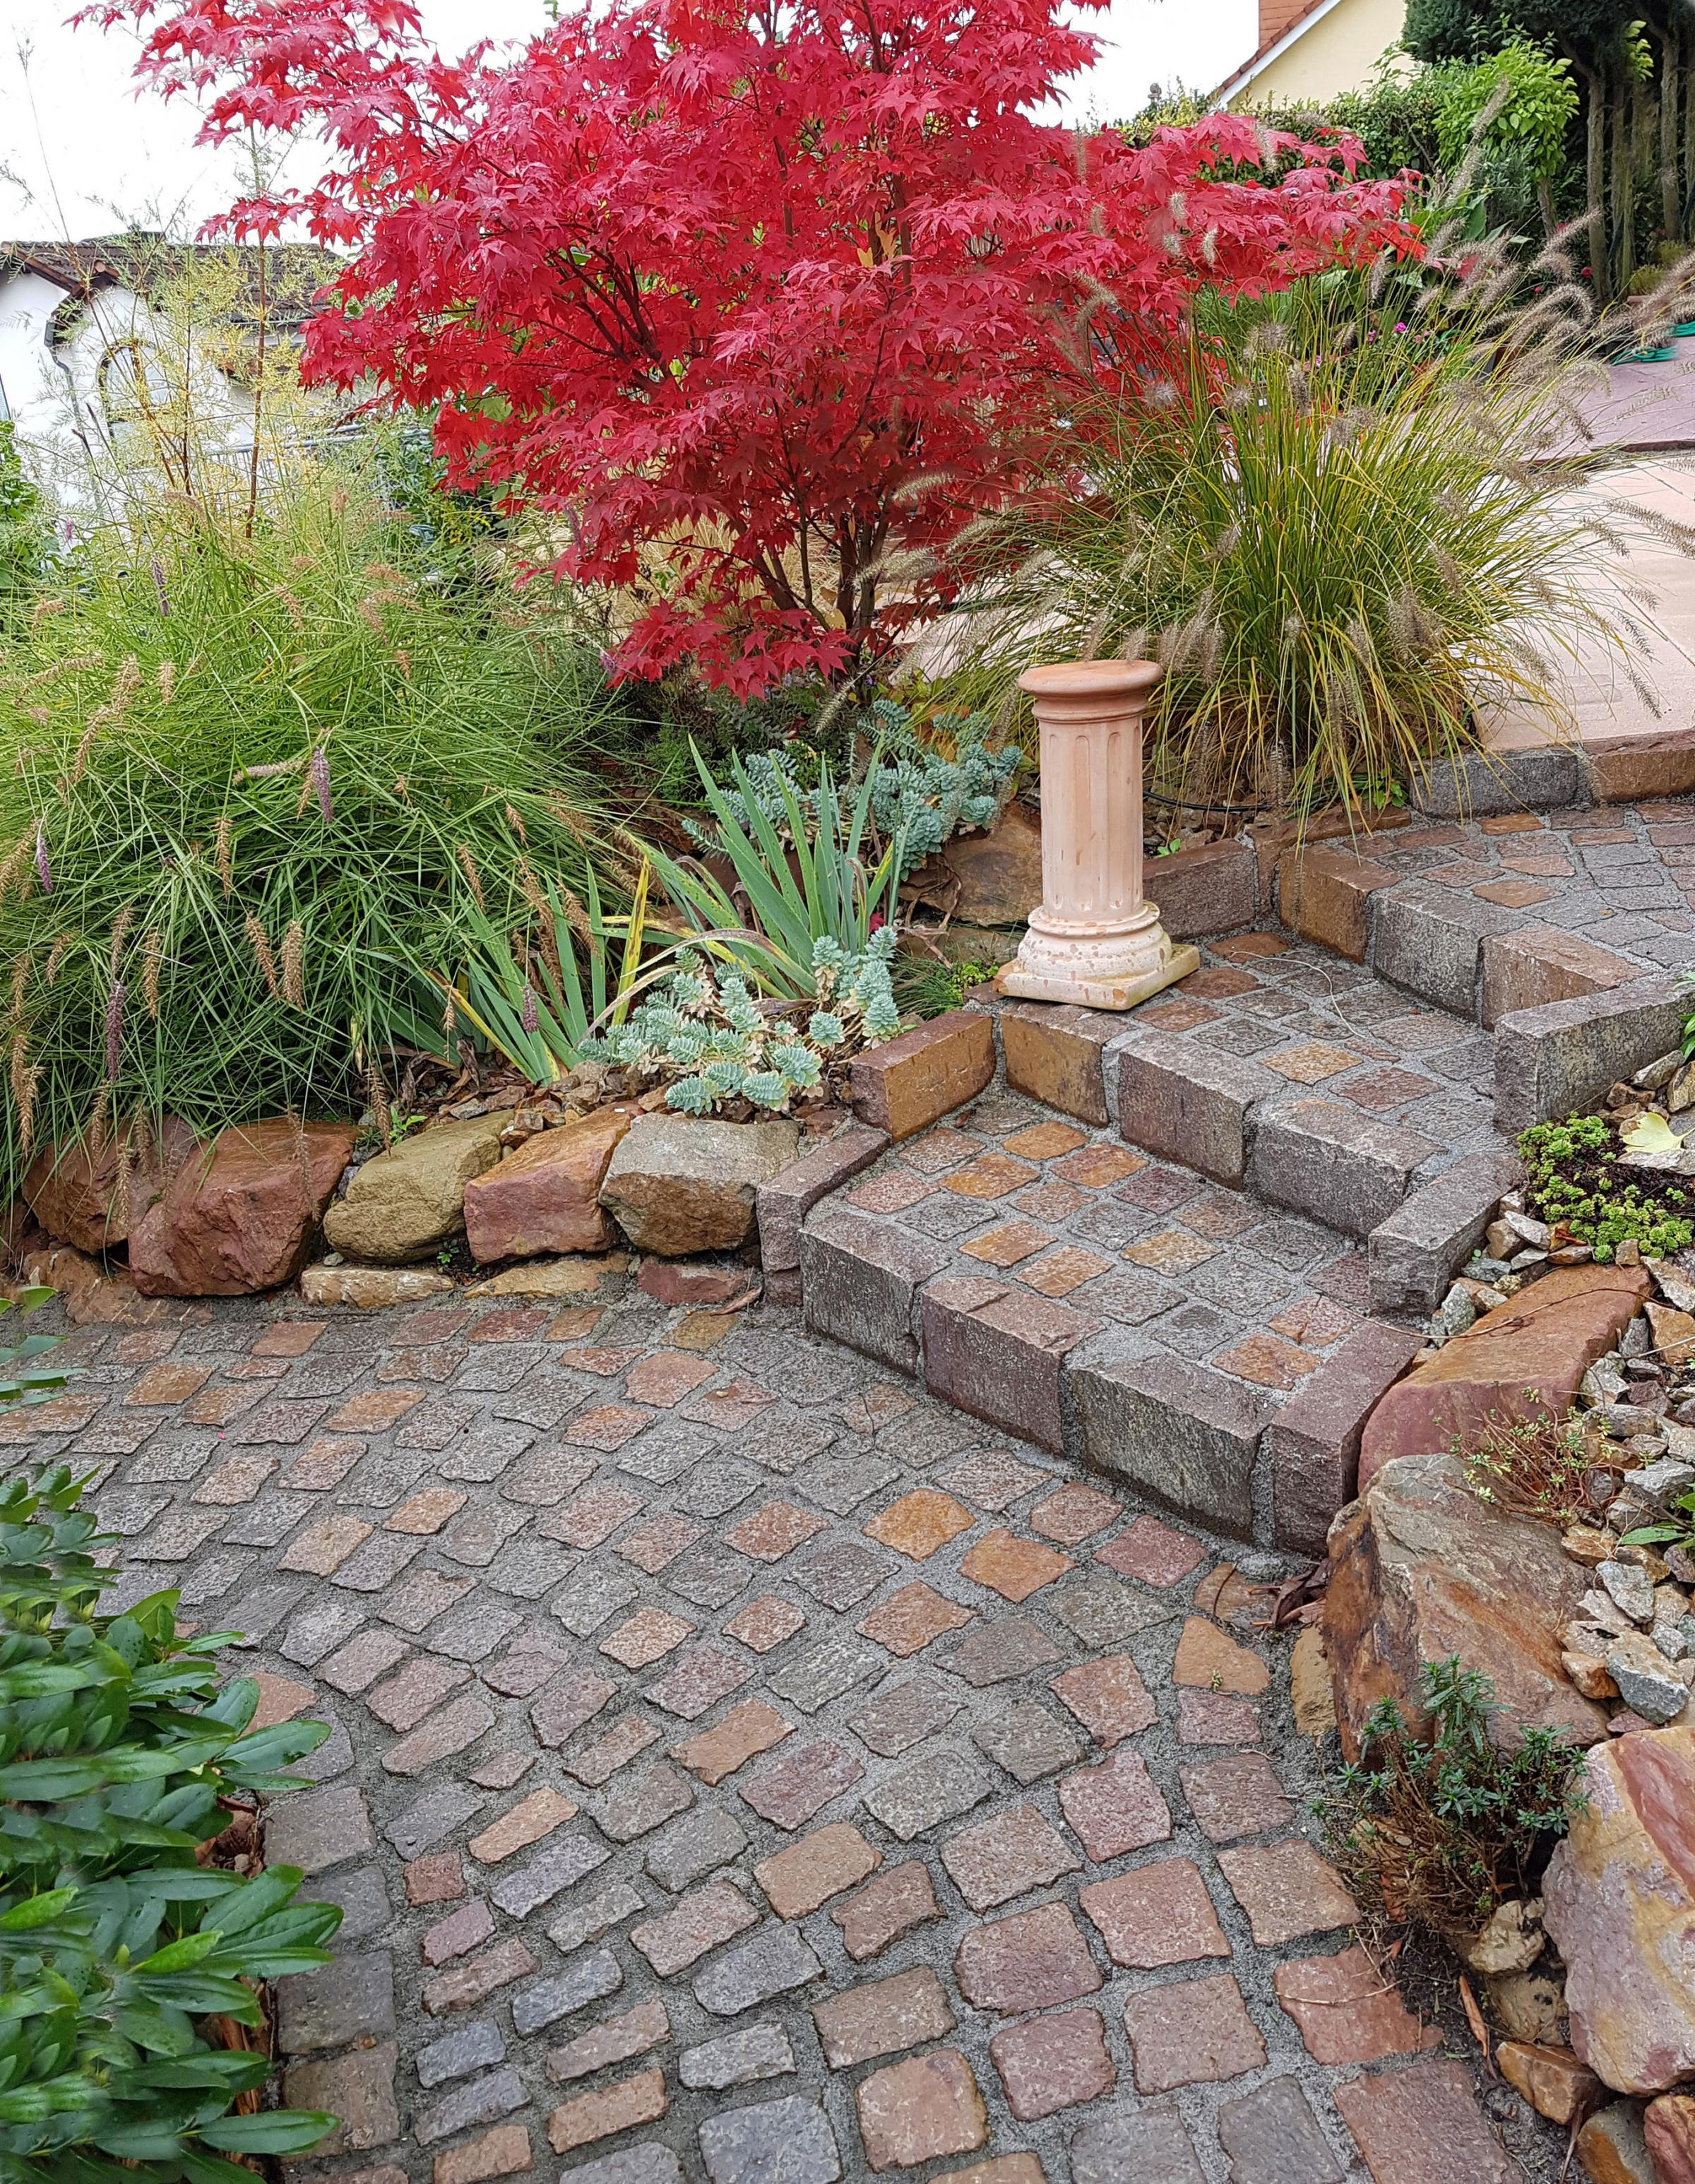 Undated Handout Photo of a winding path. See PA Feature GARDENING Wellbeing. Picture credit should read: Thinkstock/PA. WARNING: This picture must only be used to accompany PA Feature GARDENING Wellbeing..